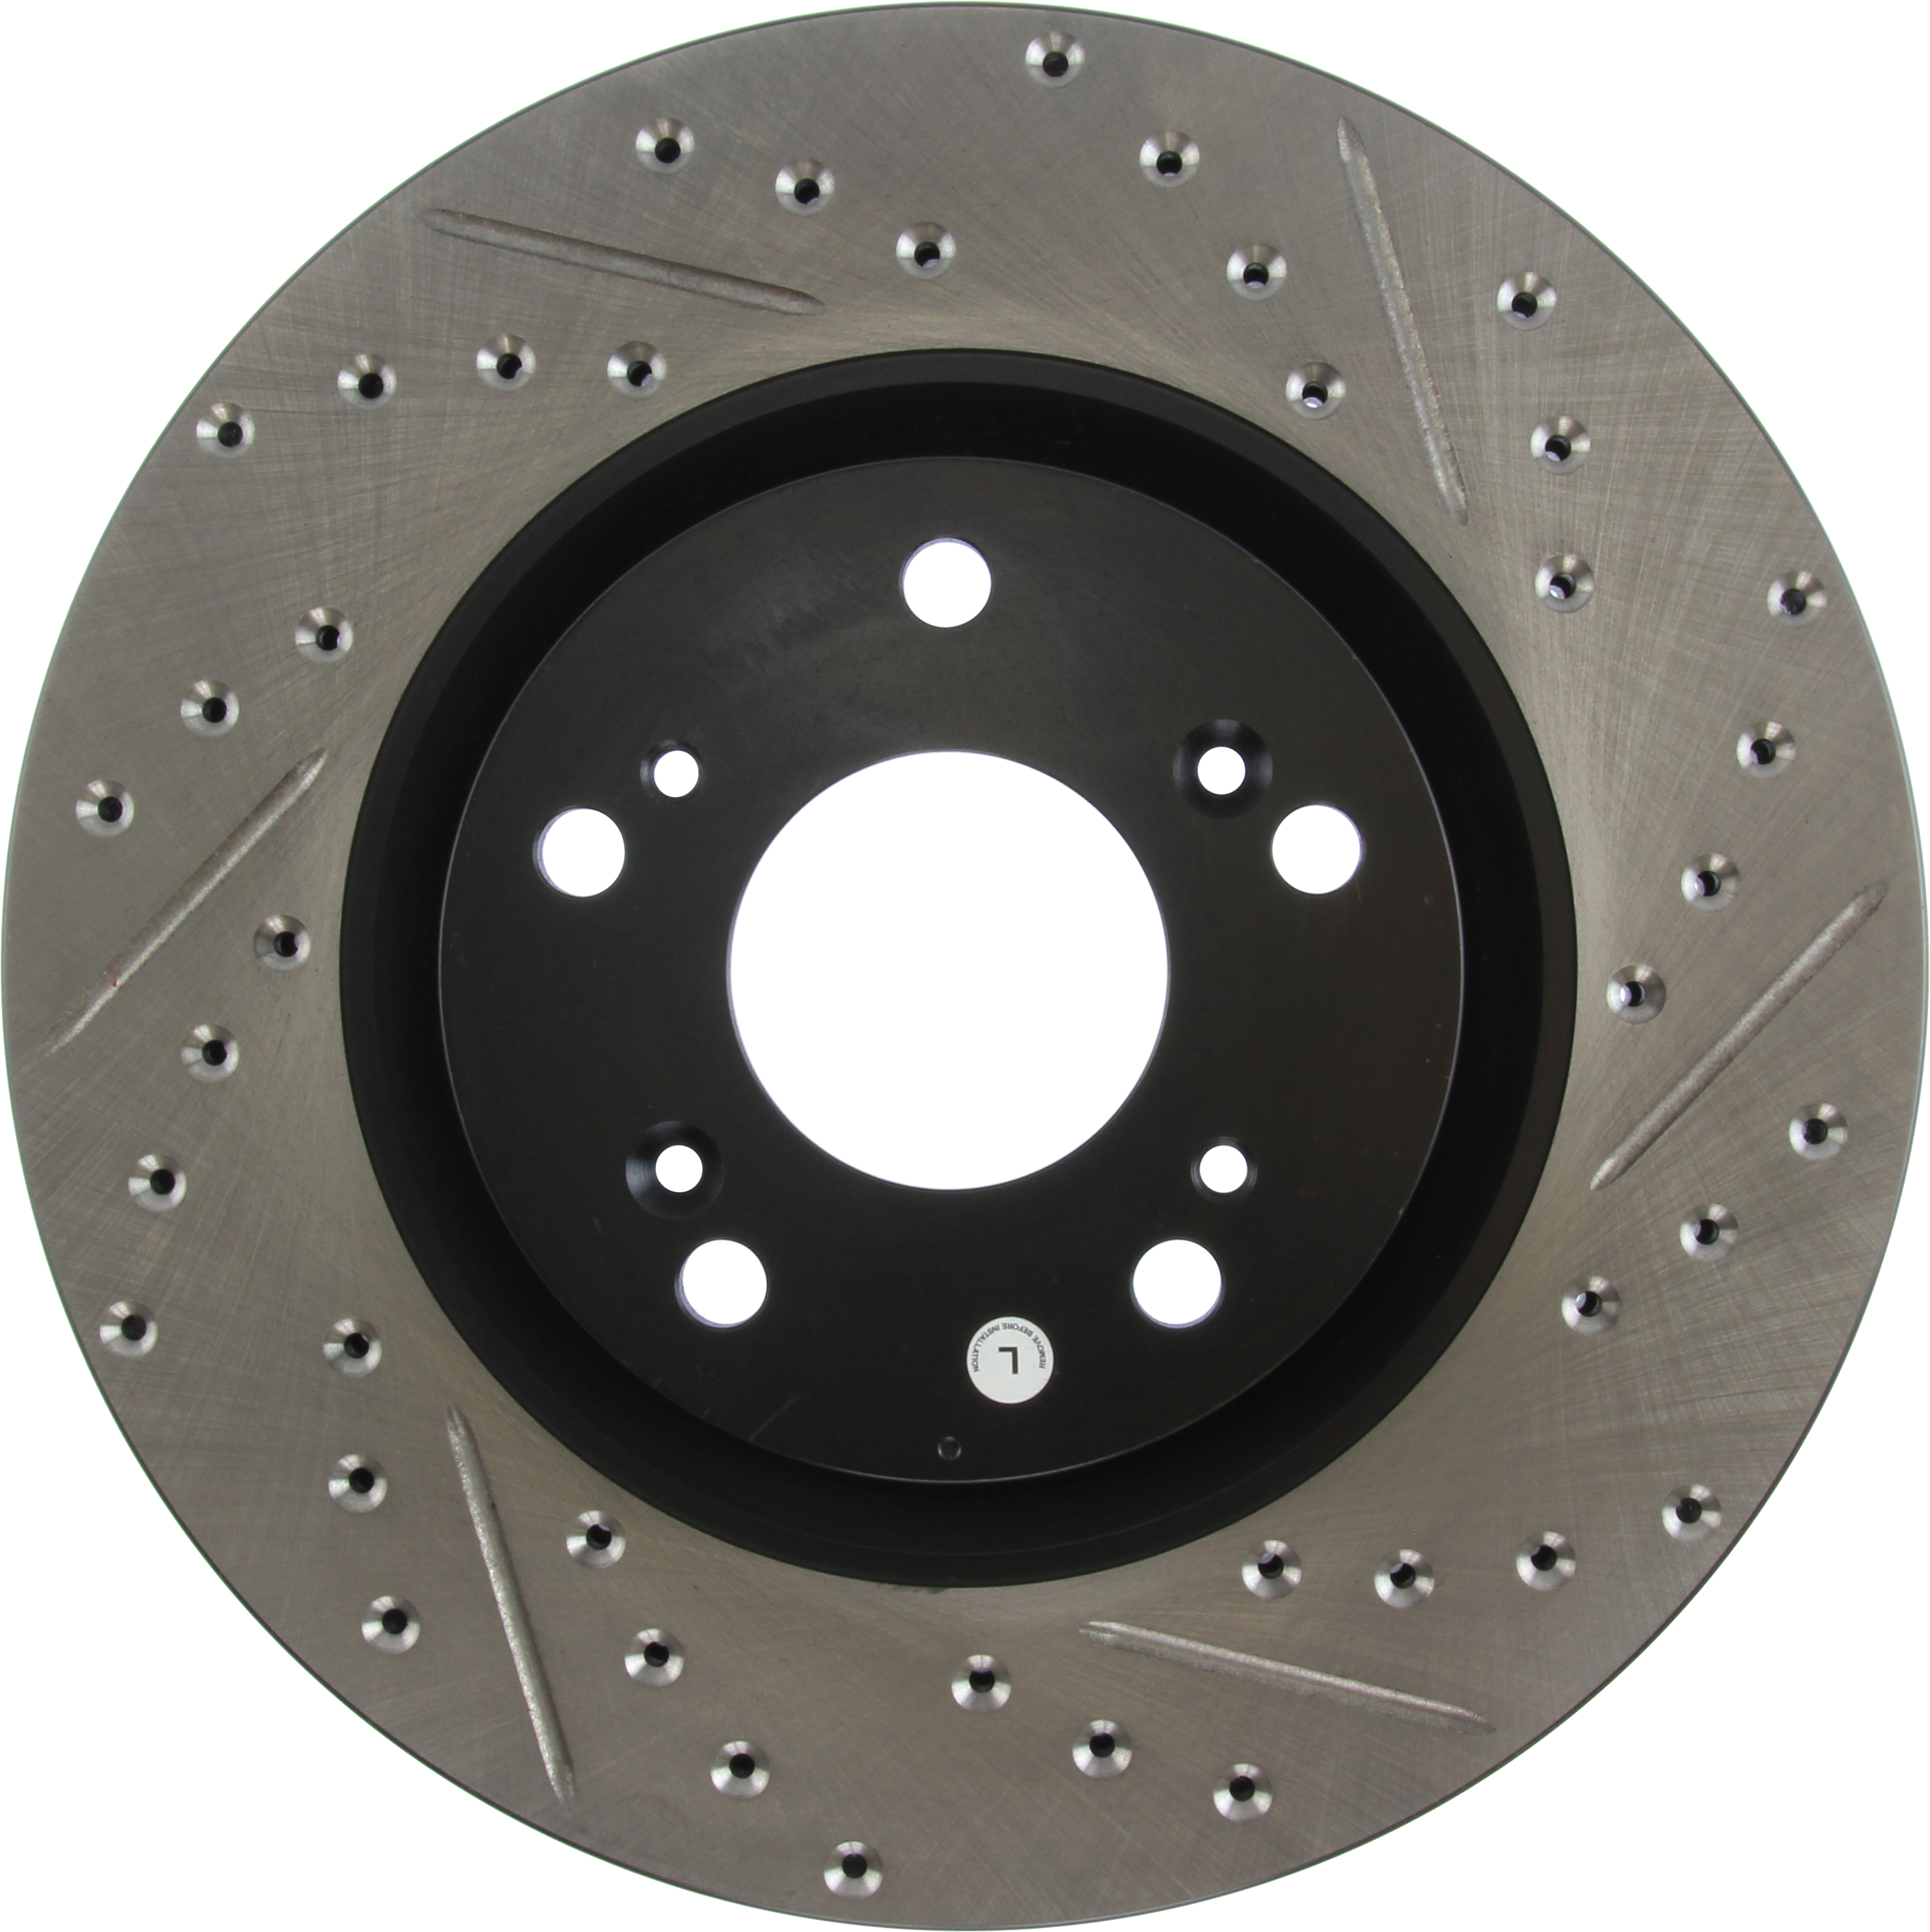 StopTech Front Left Disc Brake Rotor For 02-15 Acura RSX